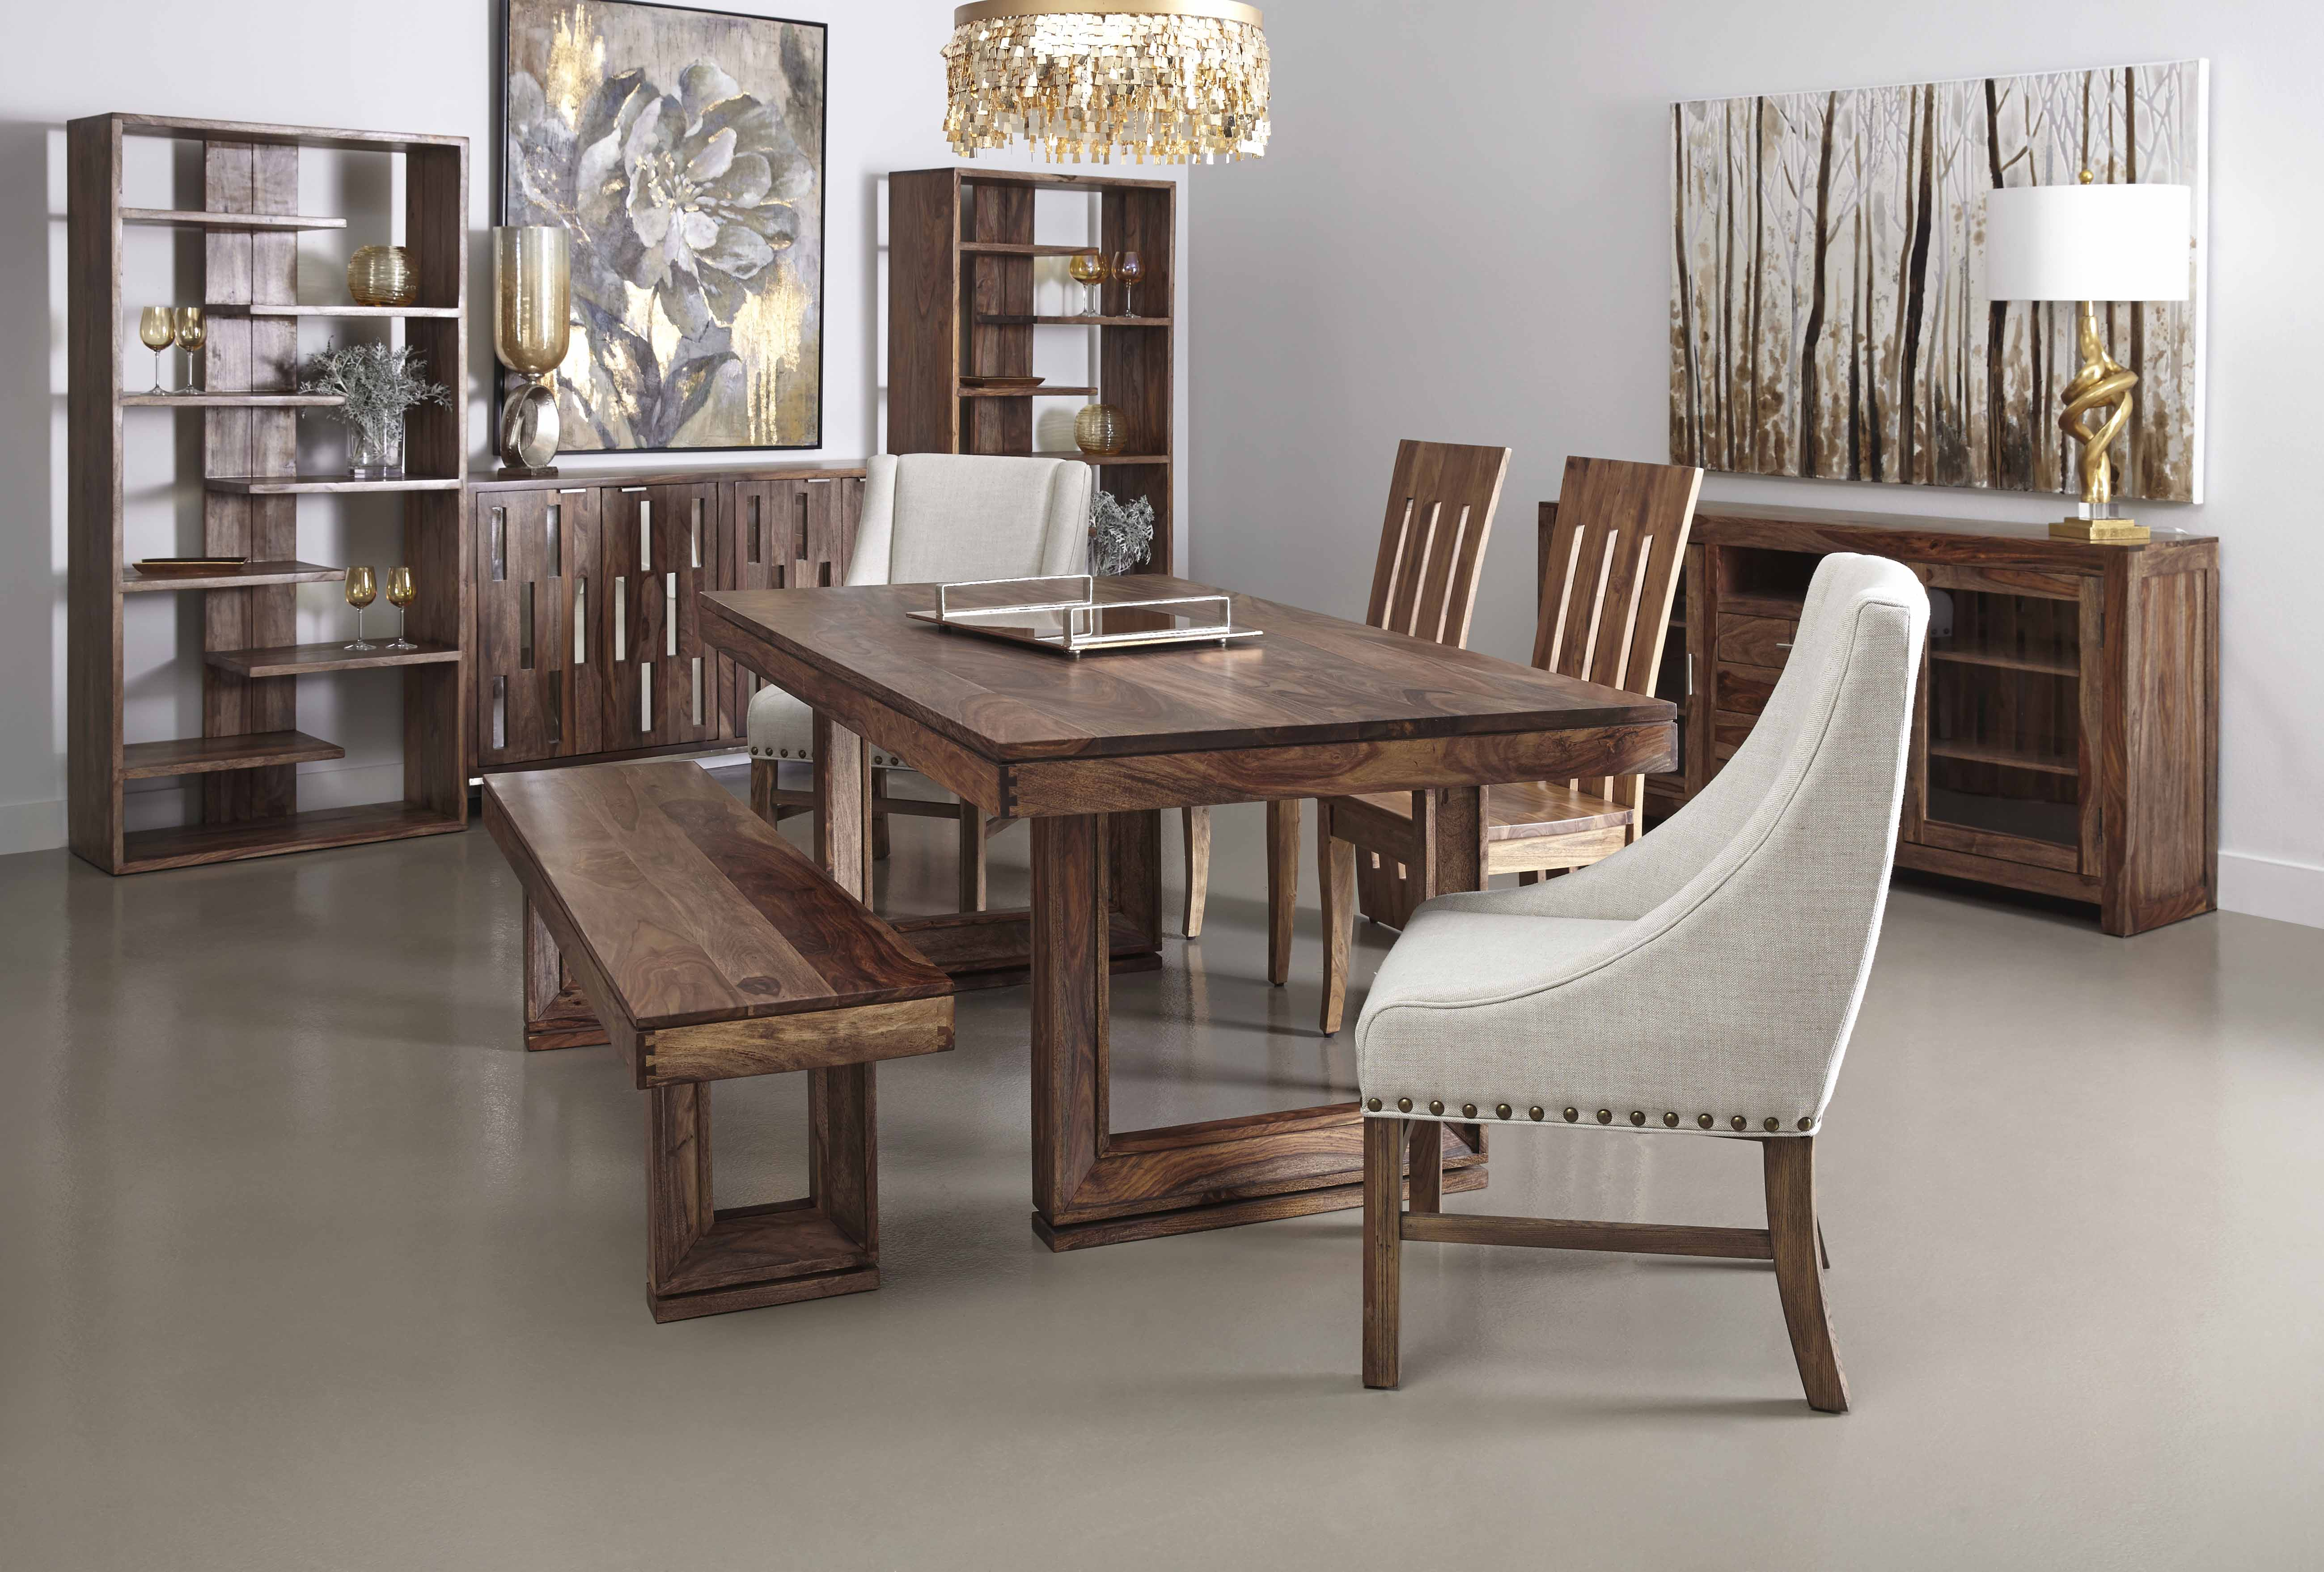 coast brownstone dining room set with accent chairs ctc furniture click enlarge vinyl placemats round table mats coffee under drawers small white gloss designer sofa company long